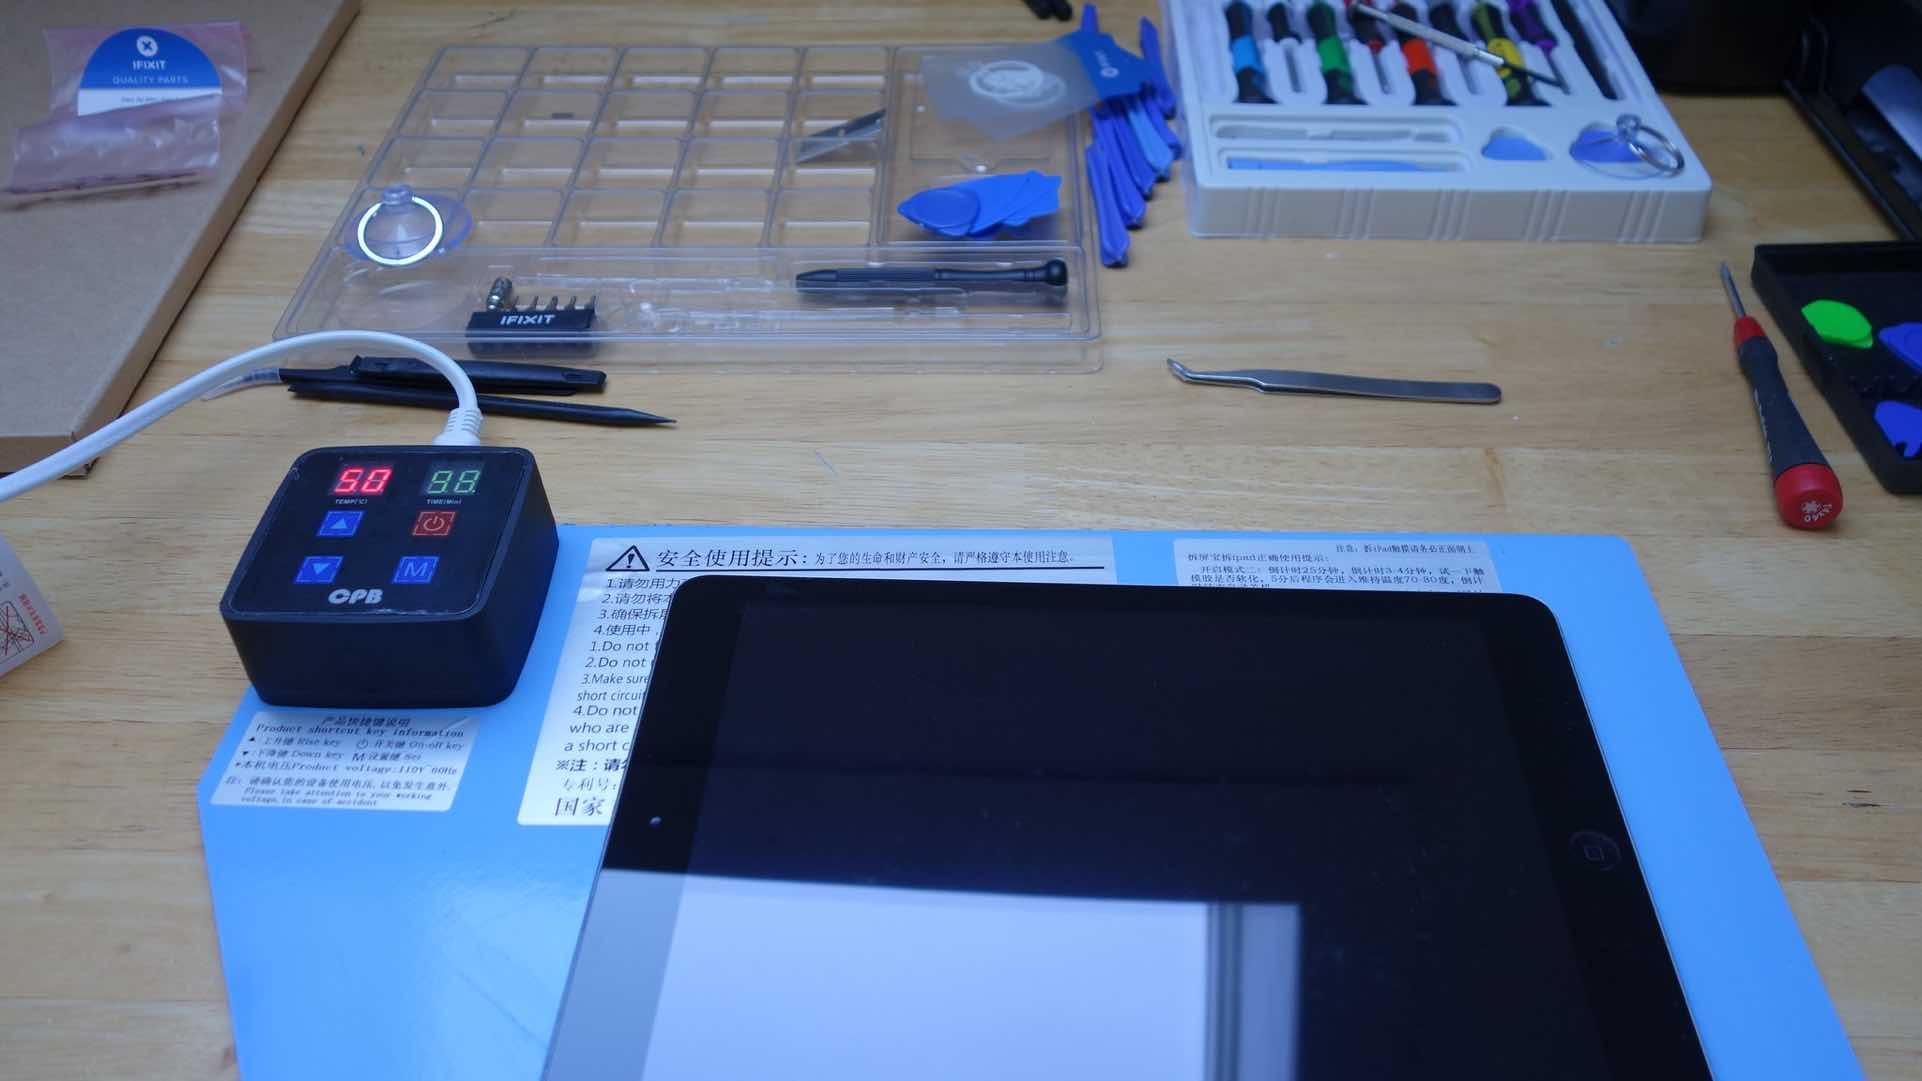 iPad undergoing repair at an independent shop